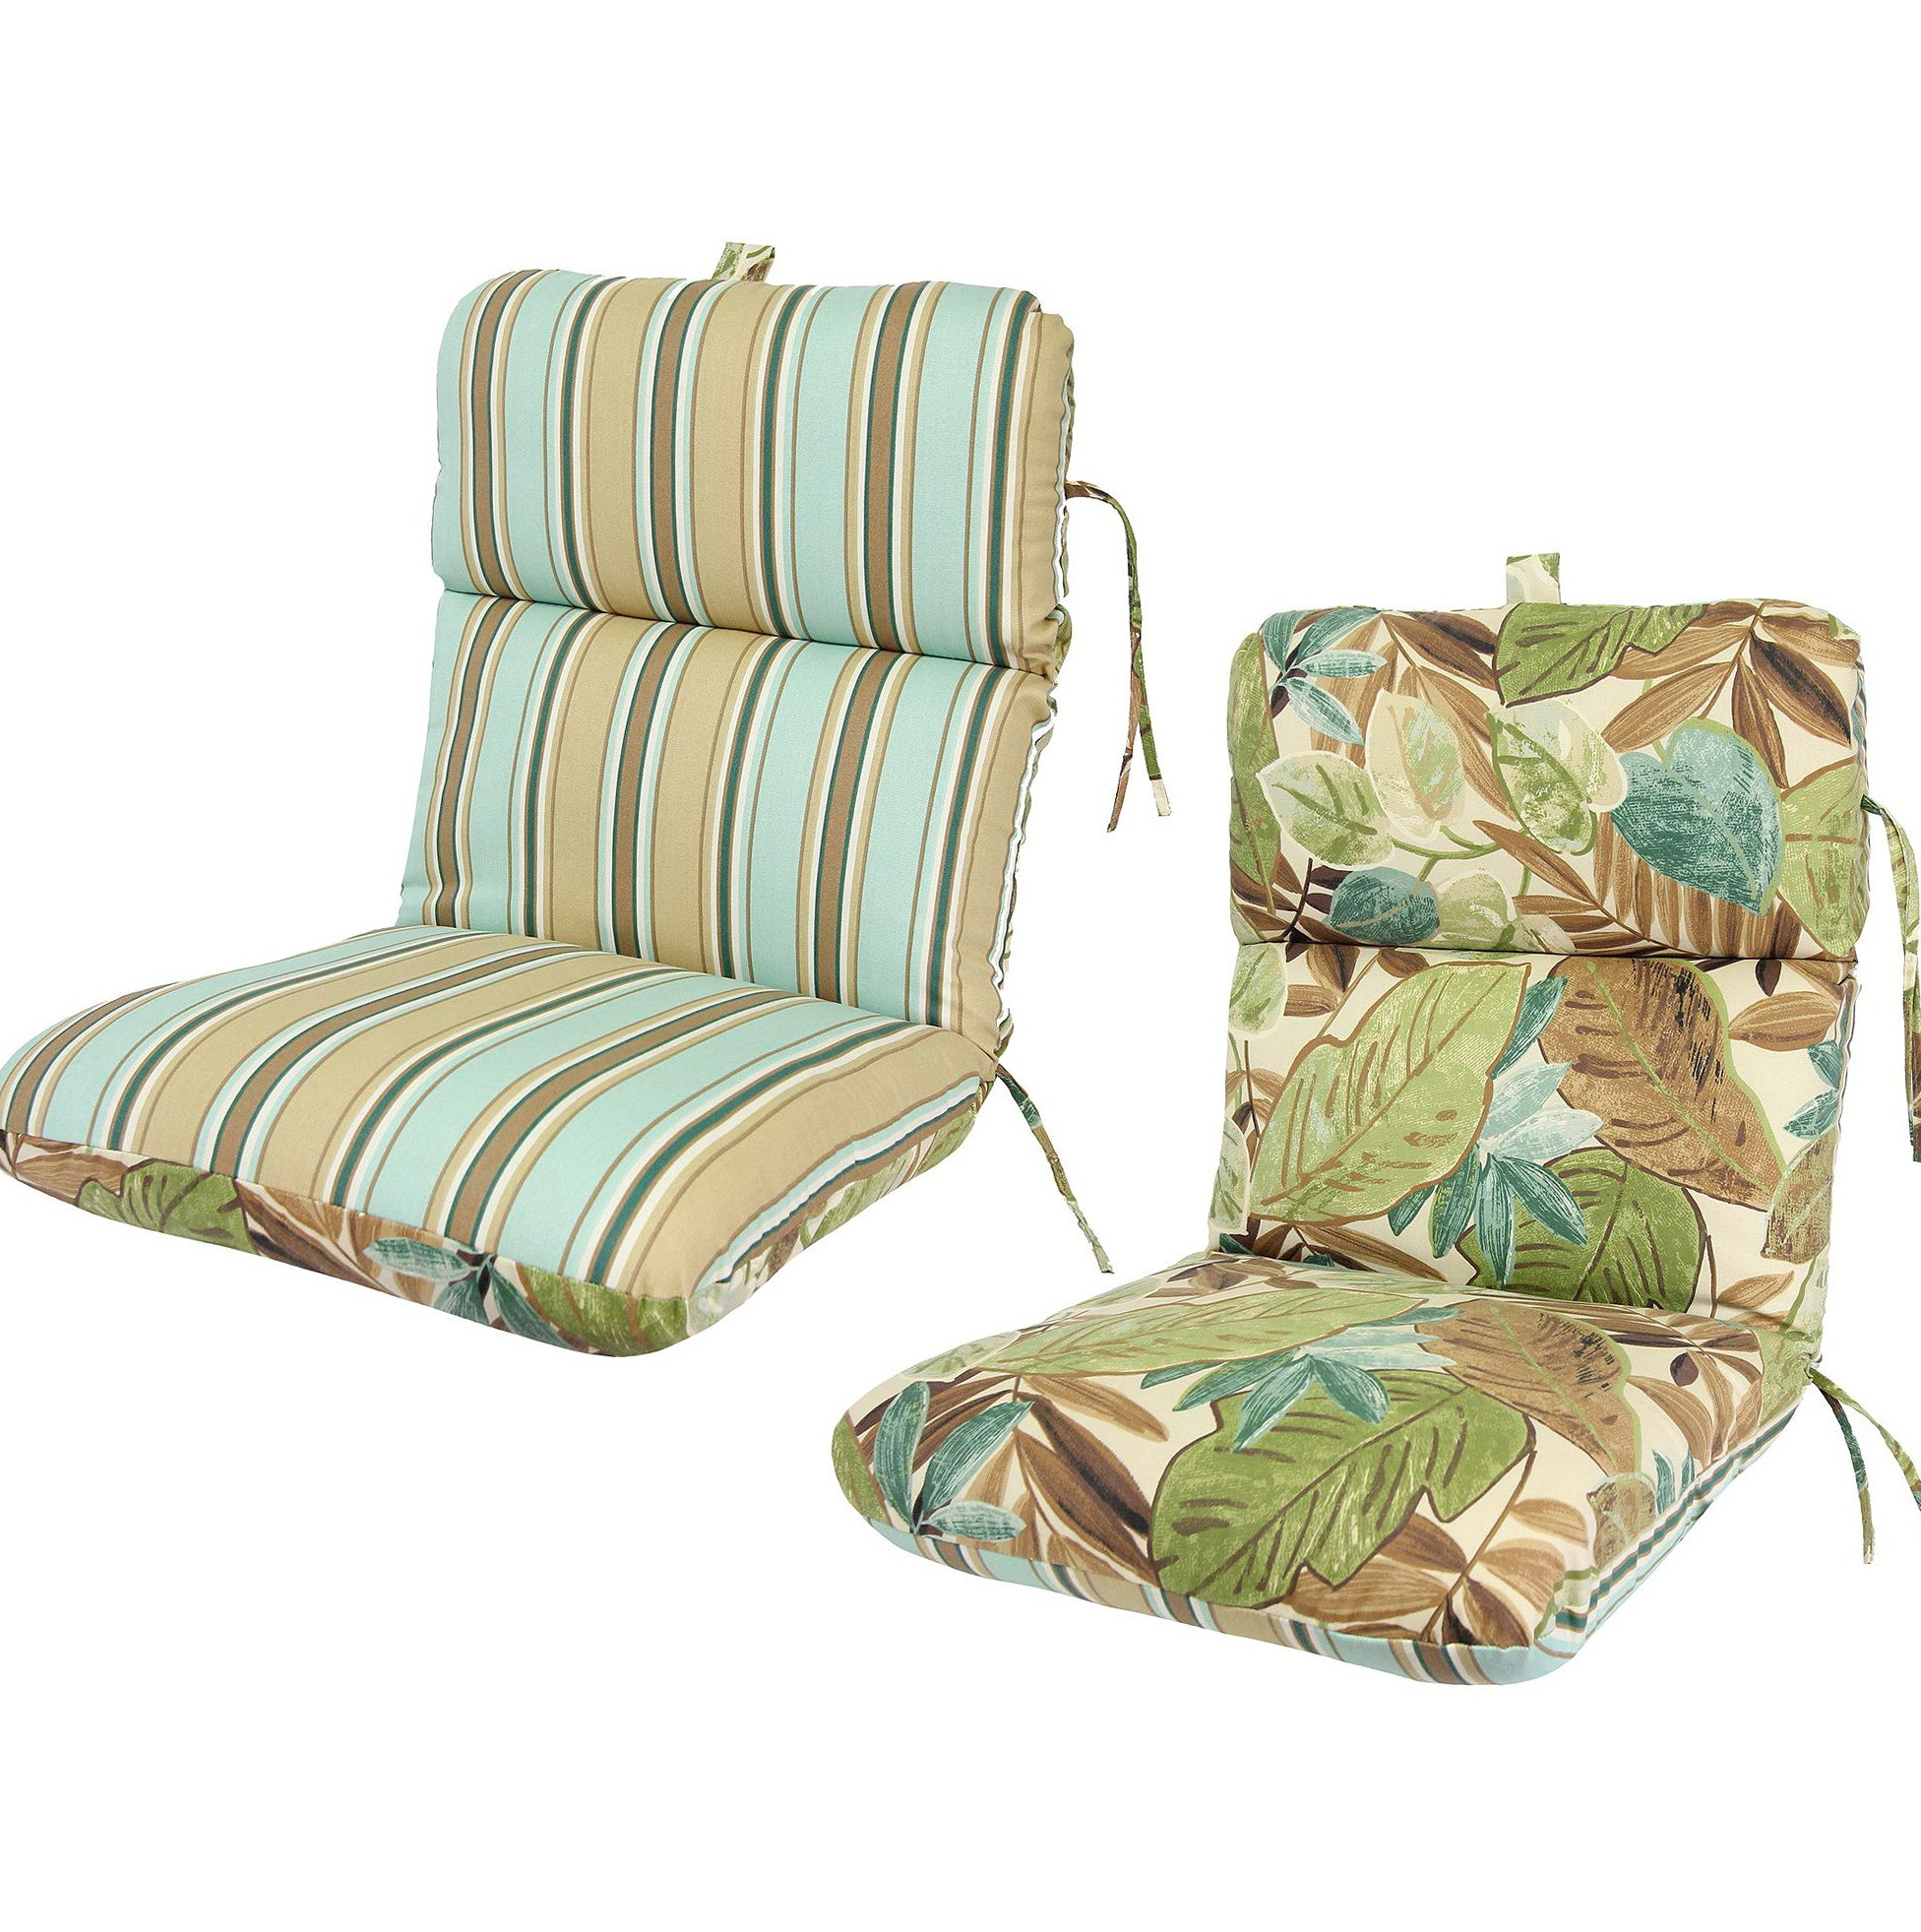 Best ideas about Outdoor Patio Chair Cushions . Save or Pin Inspirations Excellent Walmart Patio Chair Cushions To Now.